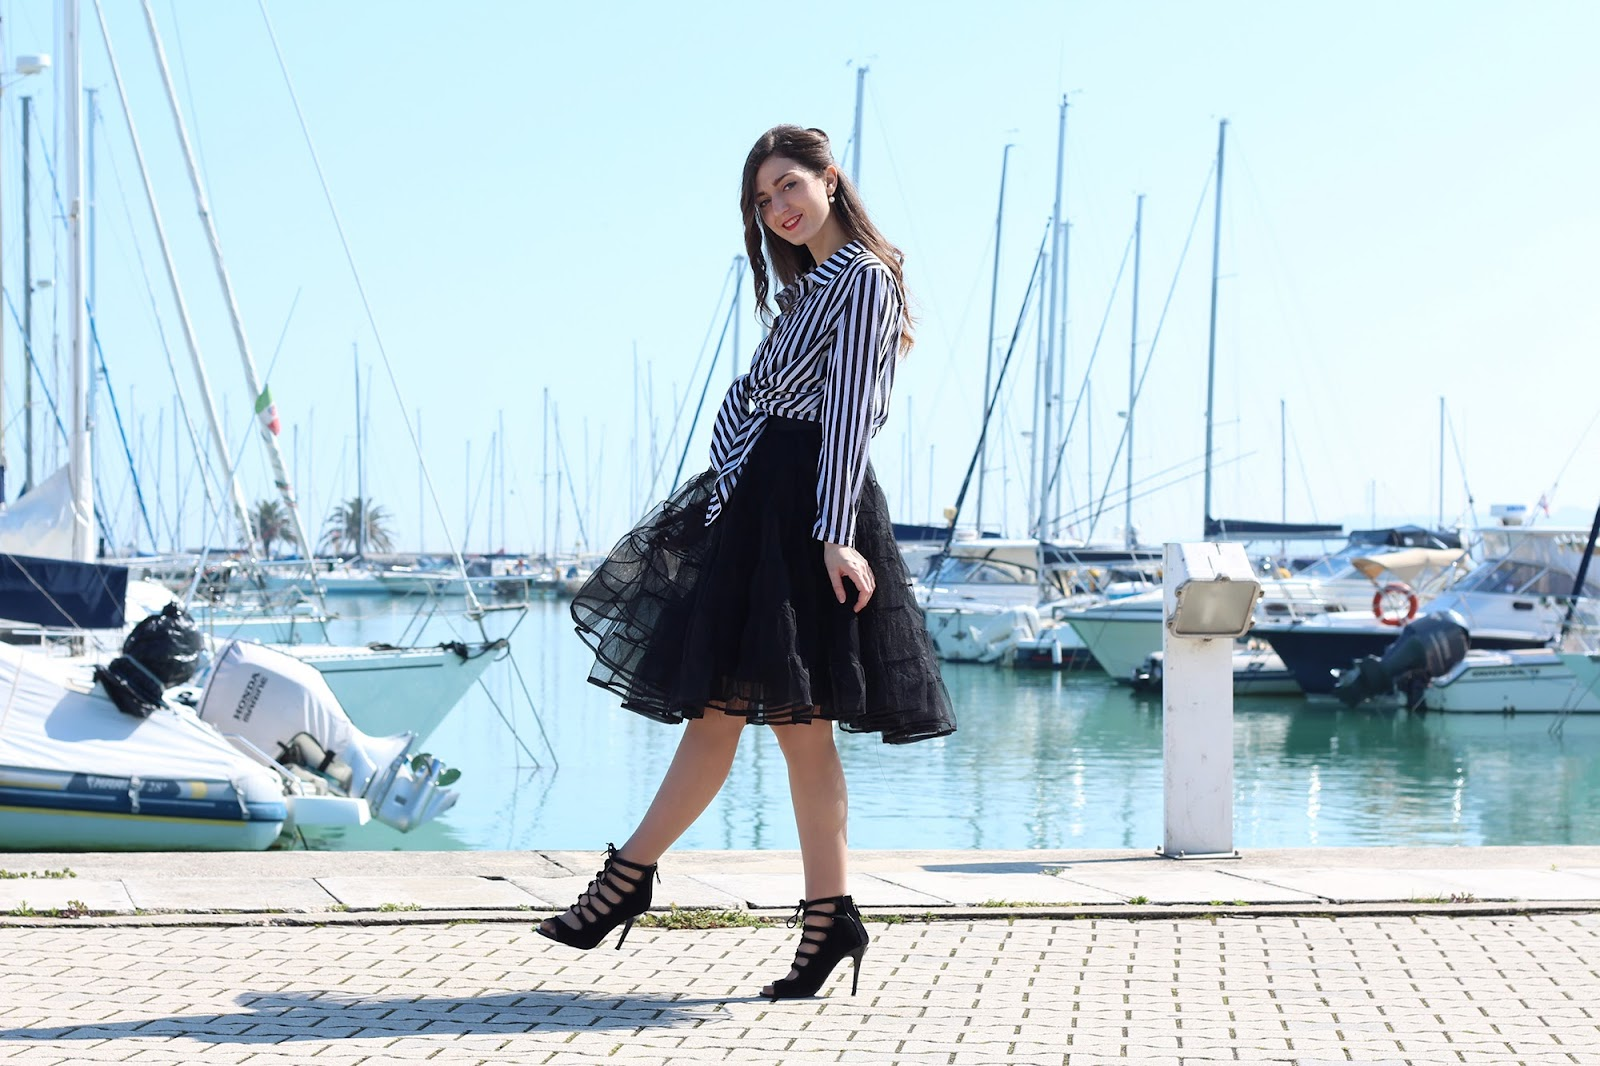 fashion '50 style blogger pescara italy girl love outfit ootd pearls striped heels zara ovine ovs black tacchi sandali veggie dress tulle skirt gonna vestito camicia righe stripes shirt mastrobijoux anello ring wood